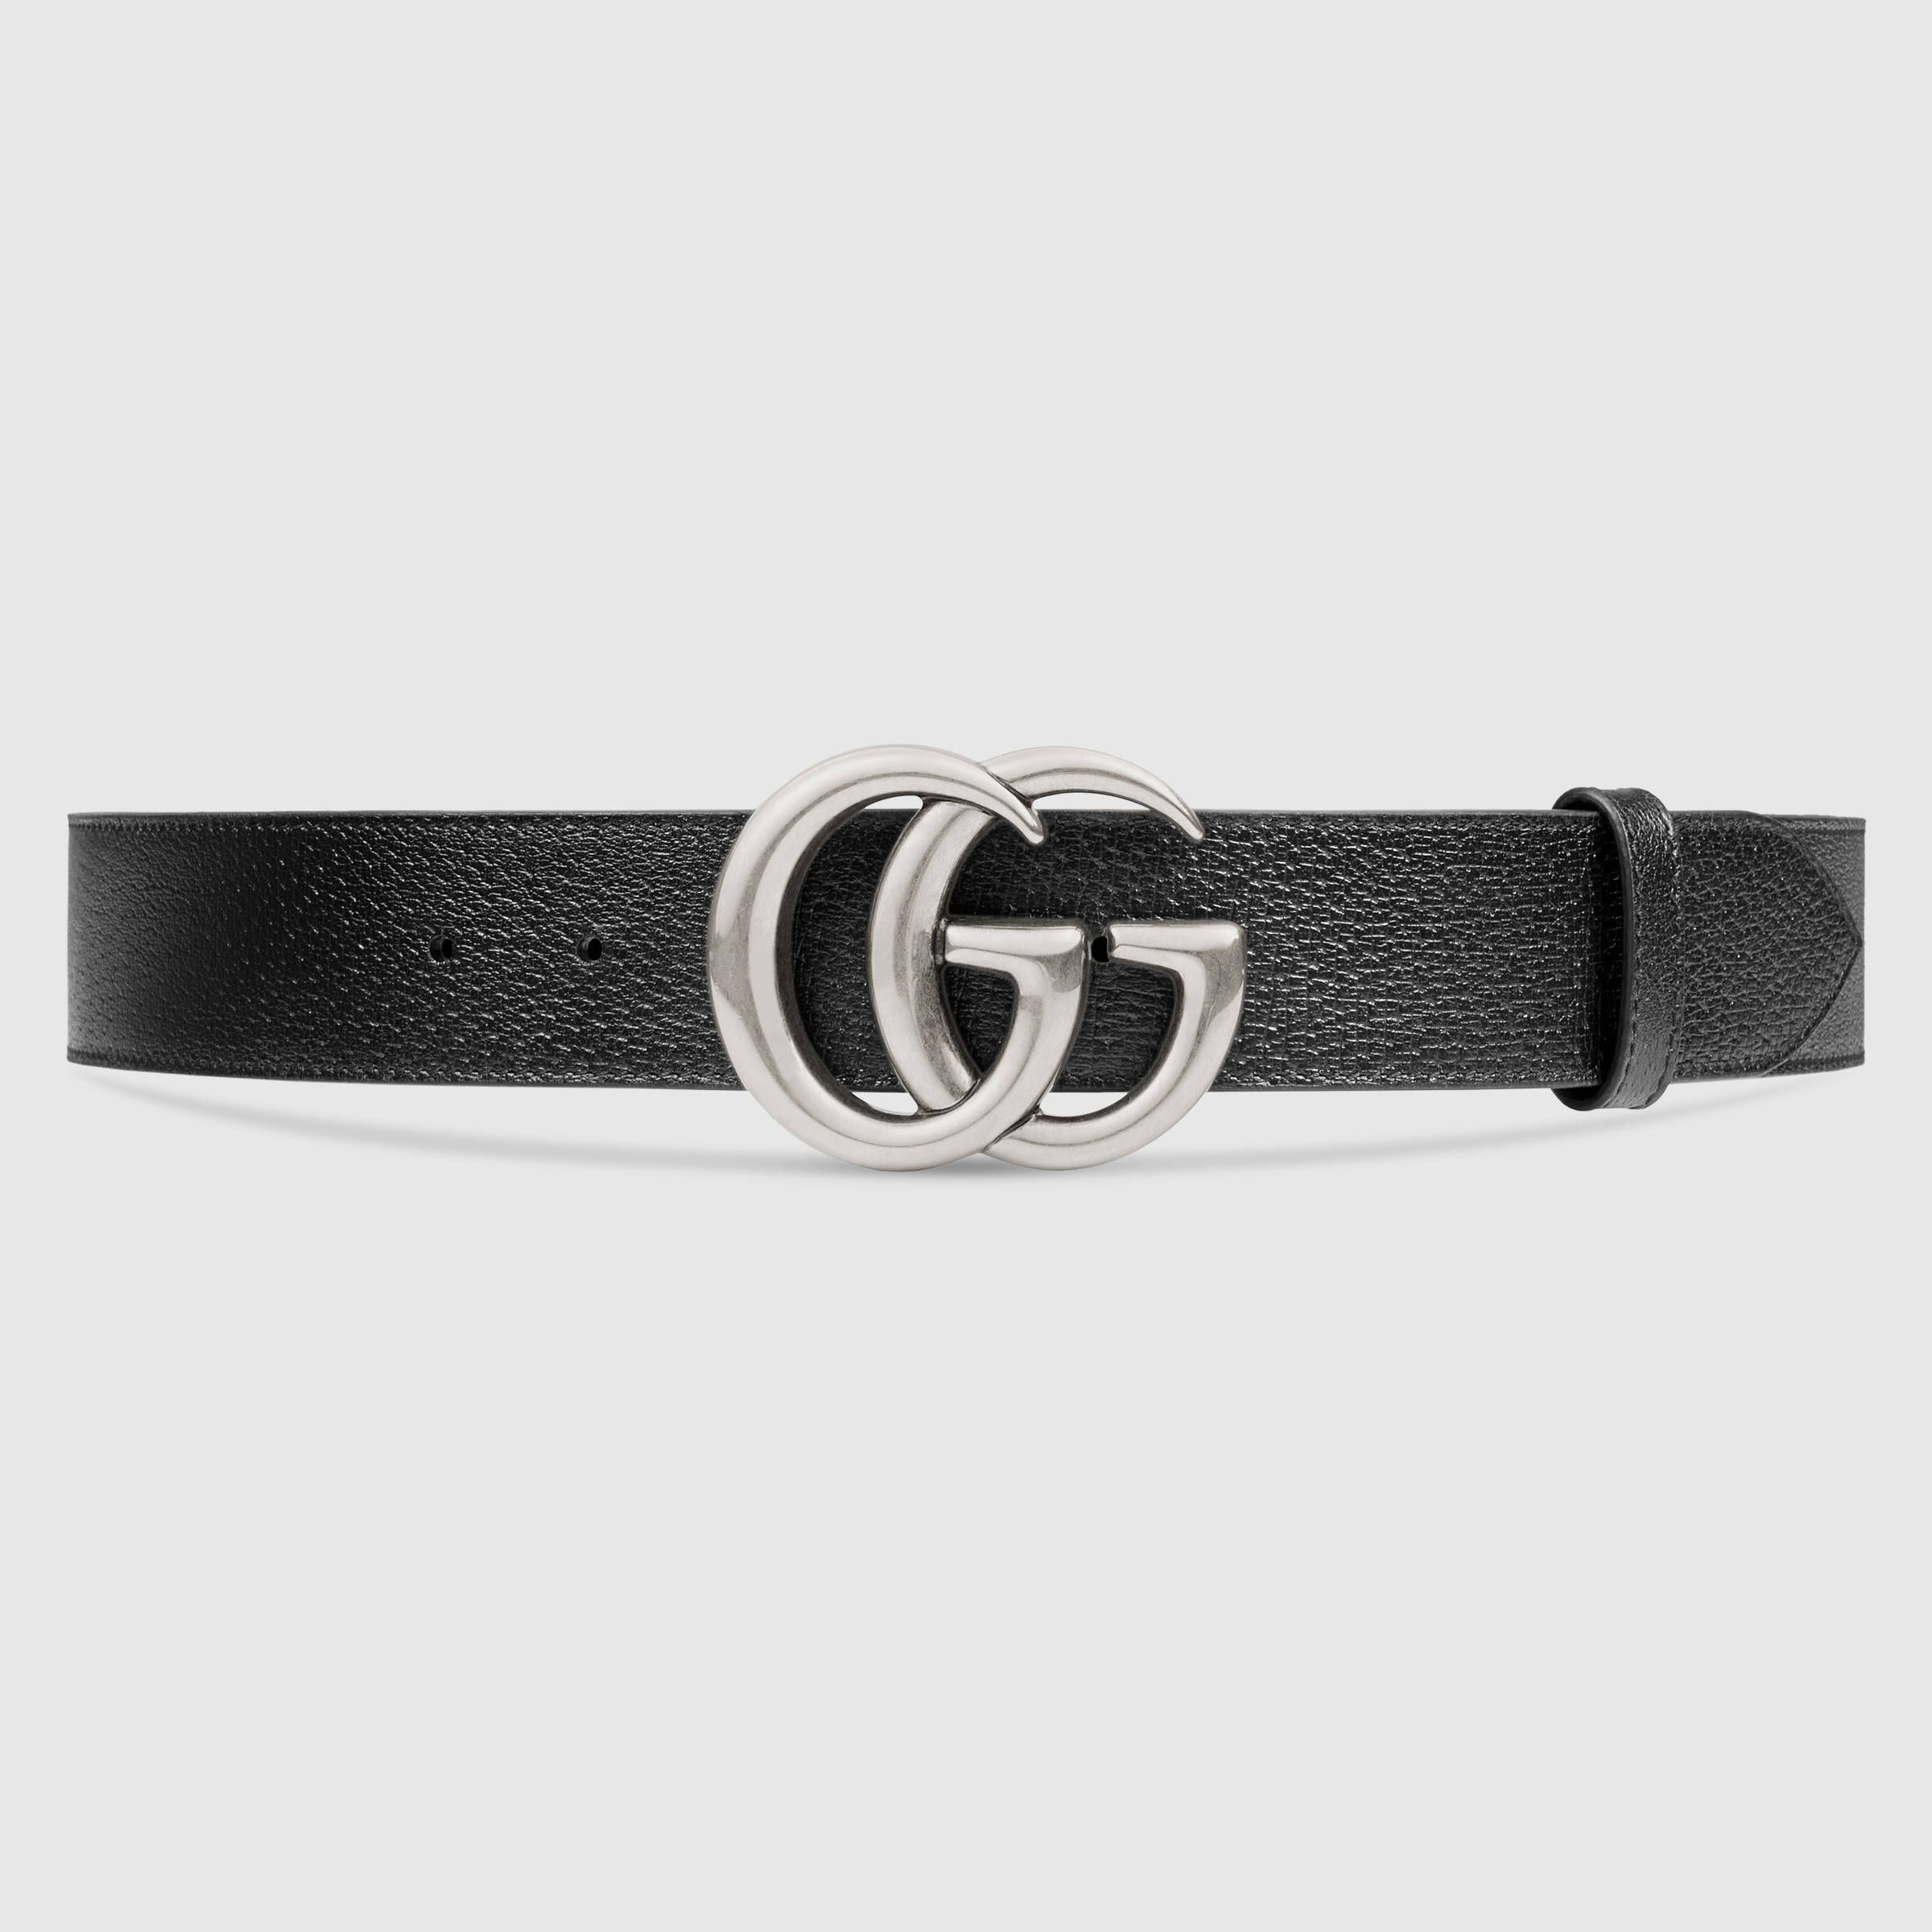 cee4904ca0b Gucci Leather belt with double G buckle  390 Style 406831 DJ20N 1000